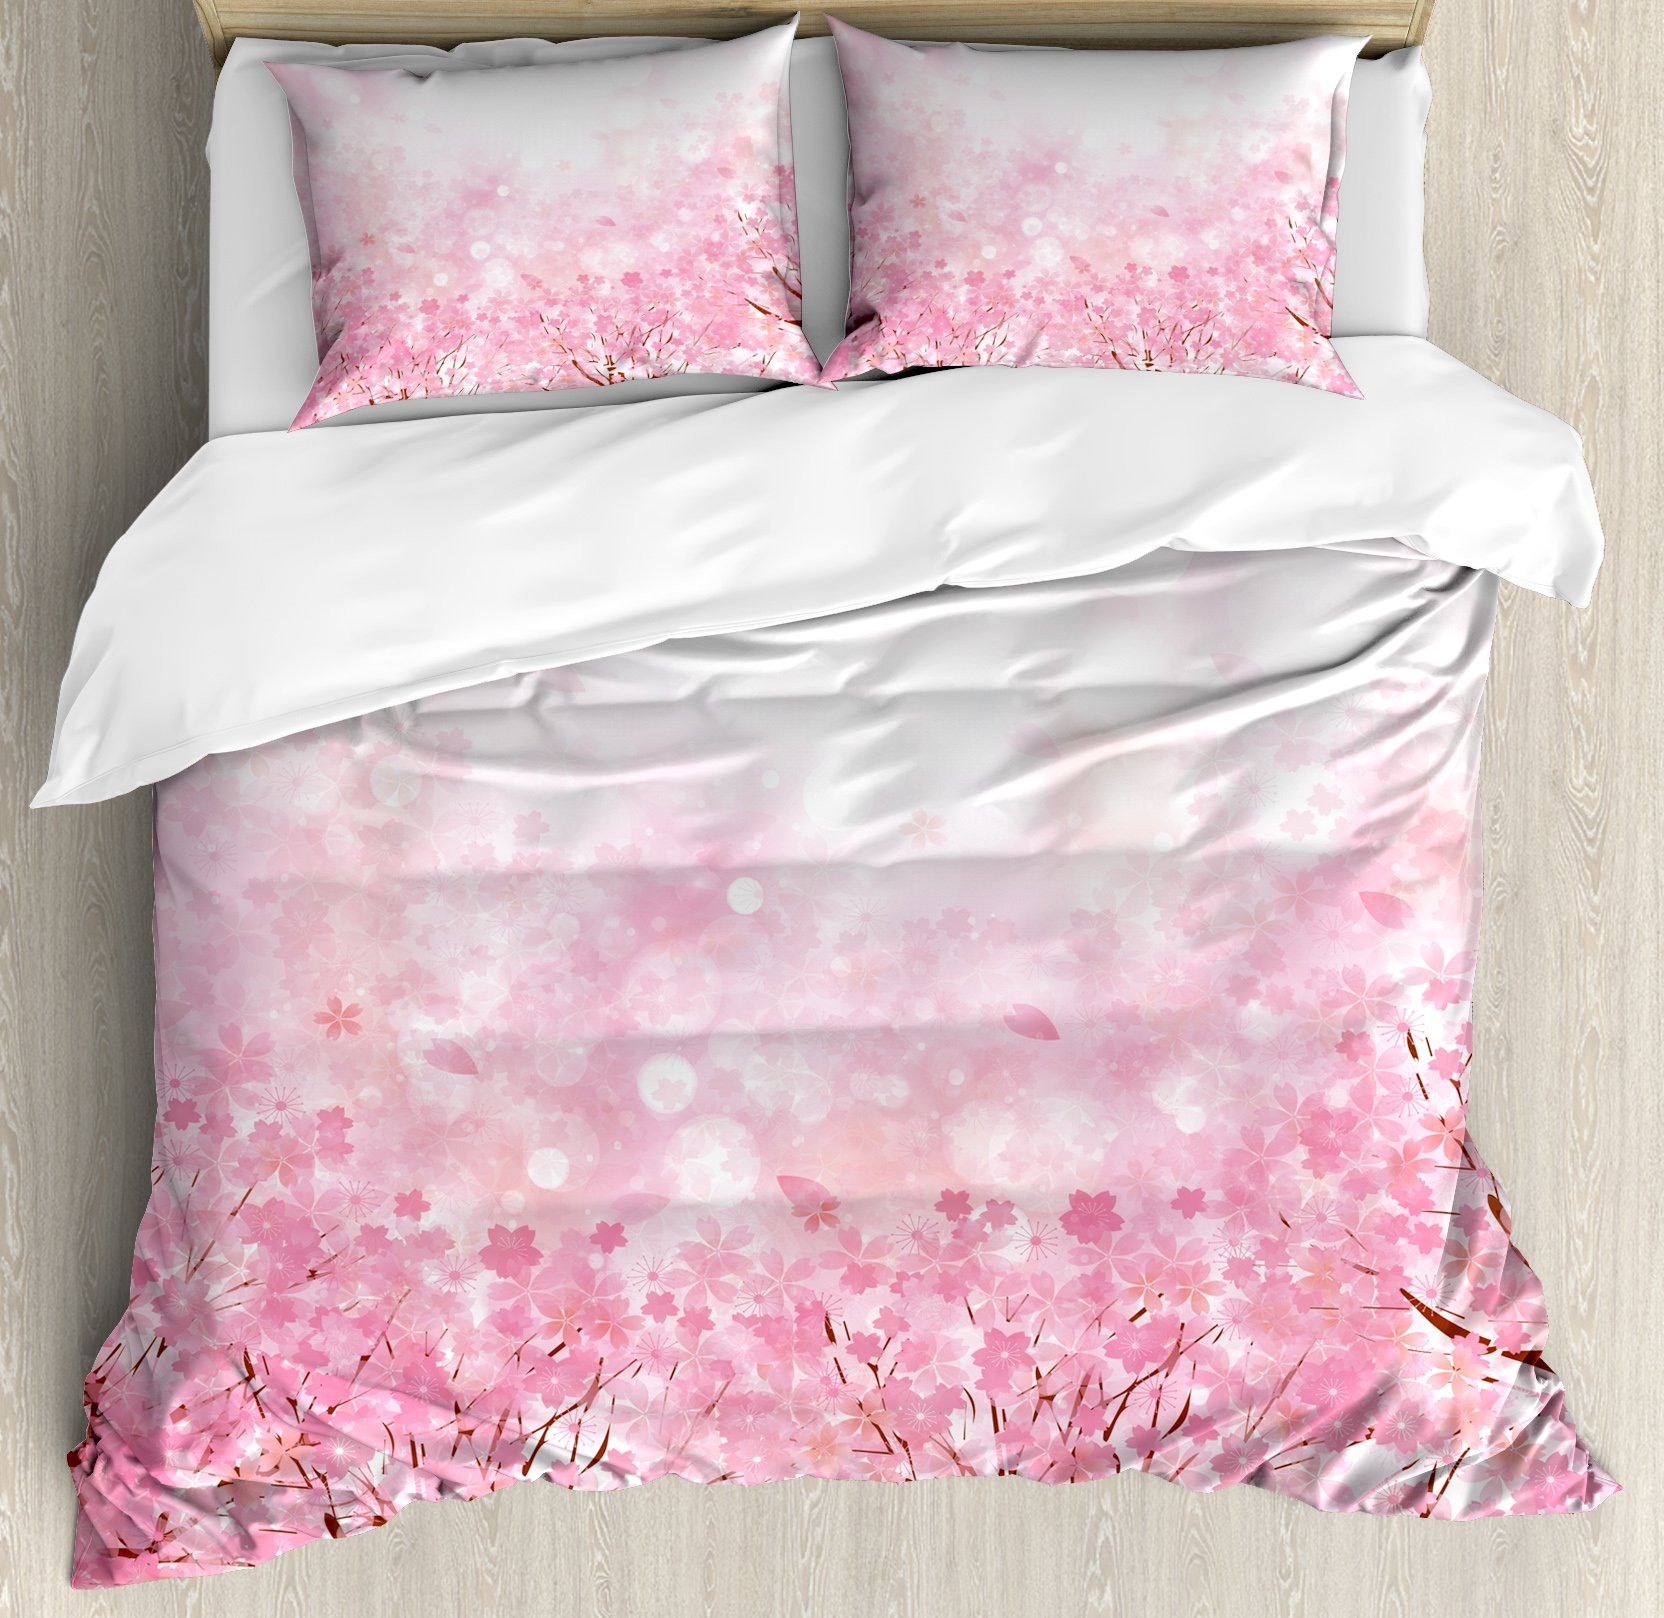 Light Pink Queen Size Duvet Cover Set by Ambesonne, Japanese Cherry Blossom Sakura Tree with Romantic Influence Asian Nature Theme, Decorative 3 Piece Bedding Set with 2 Pillow Shams, Baby Pink